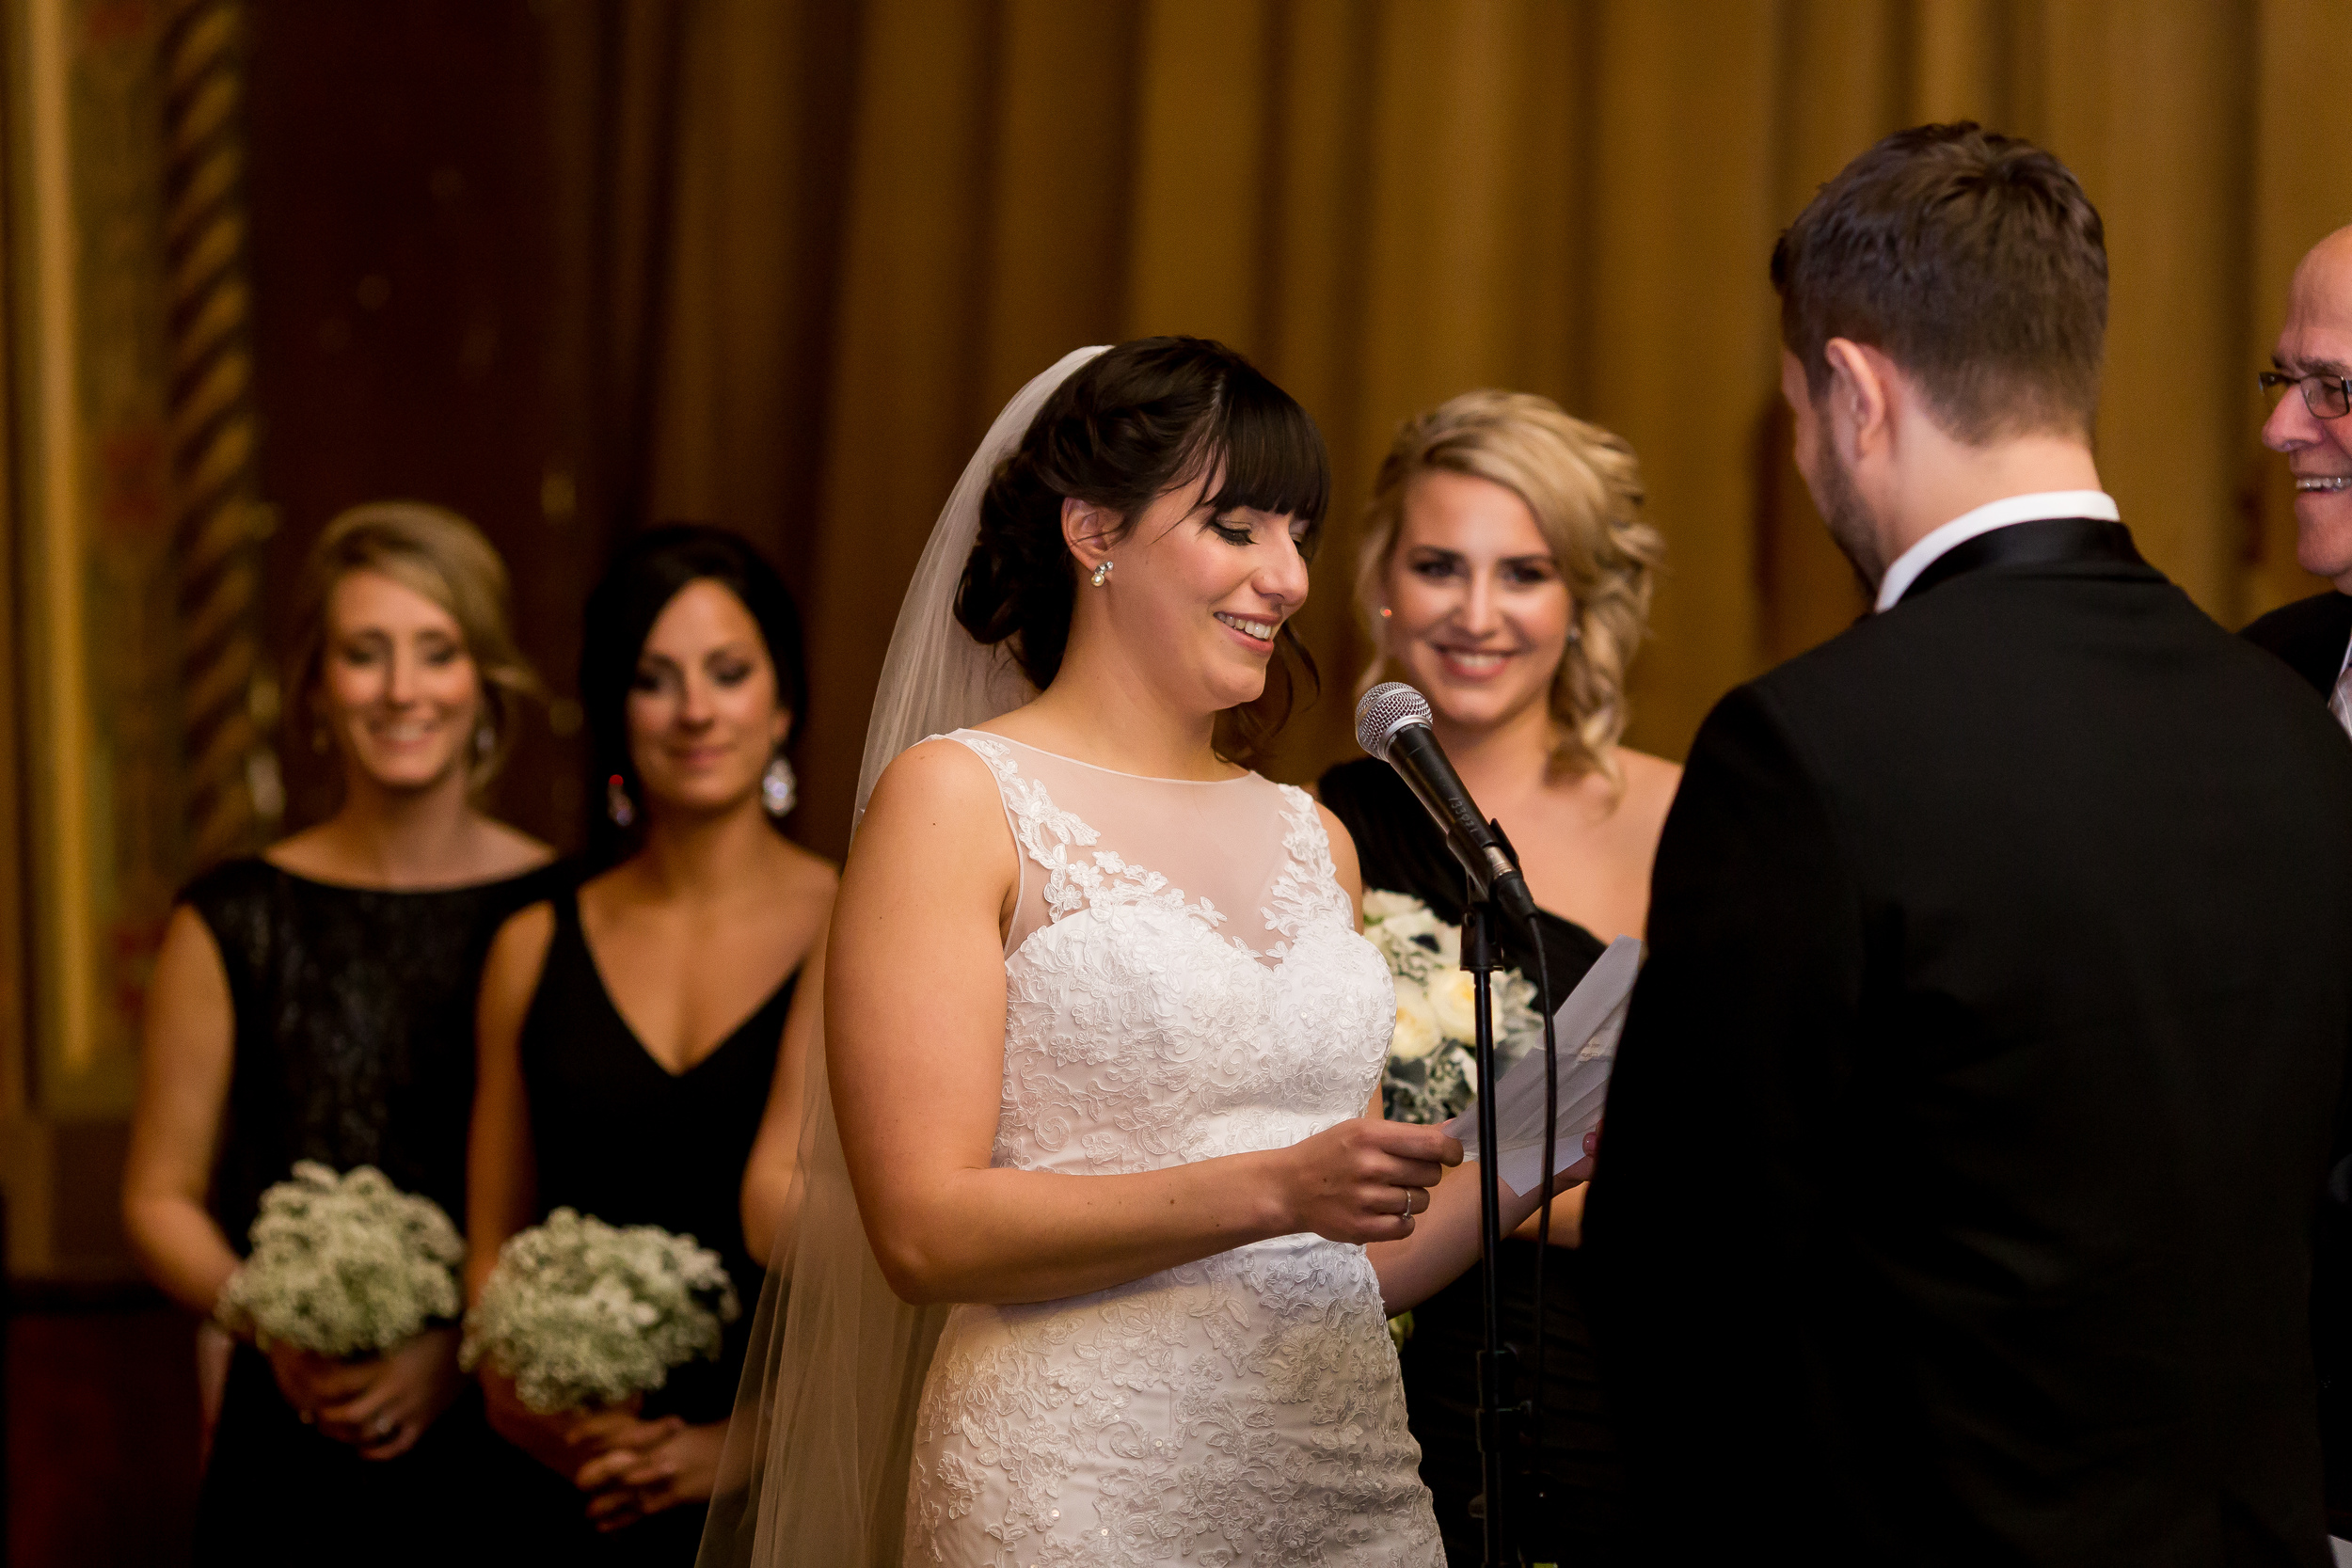 The bride reading her vows to the groom